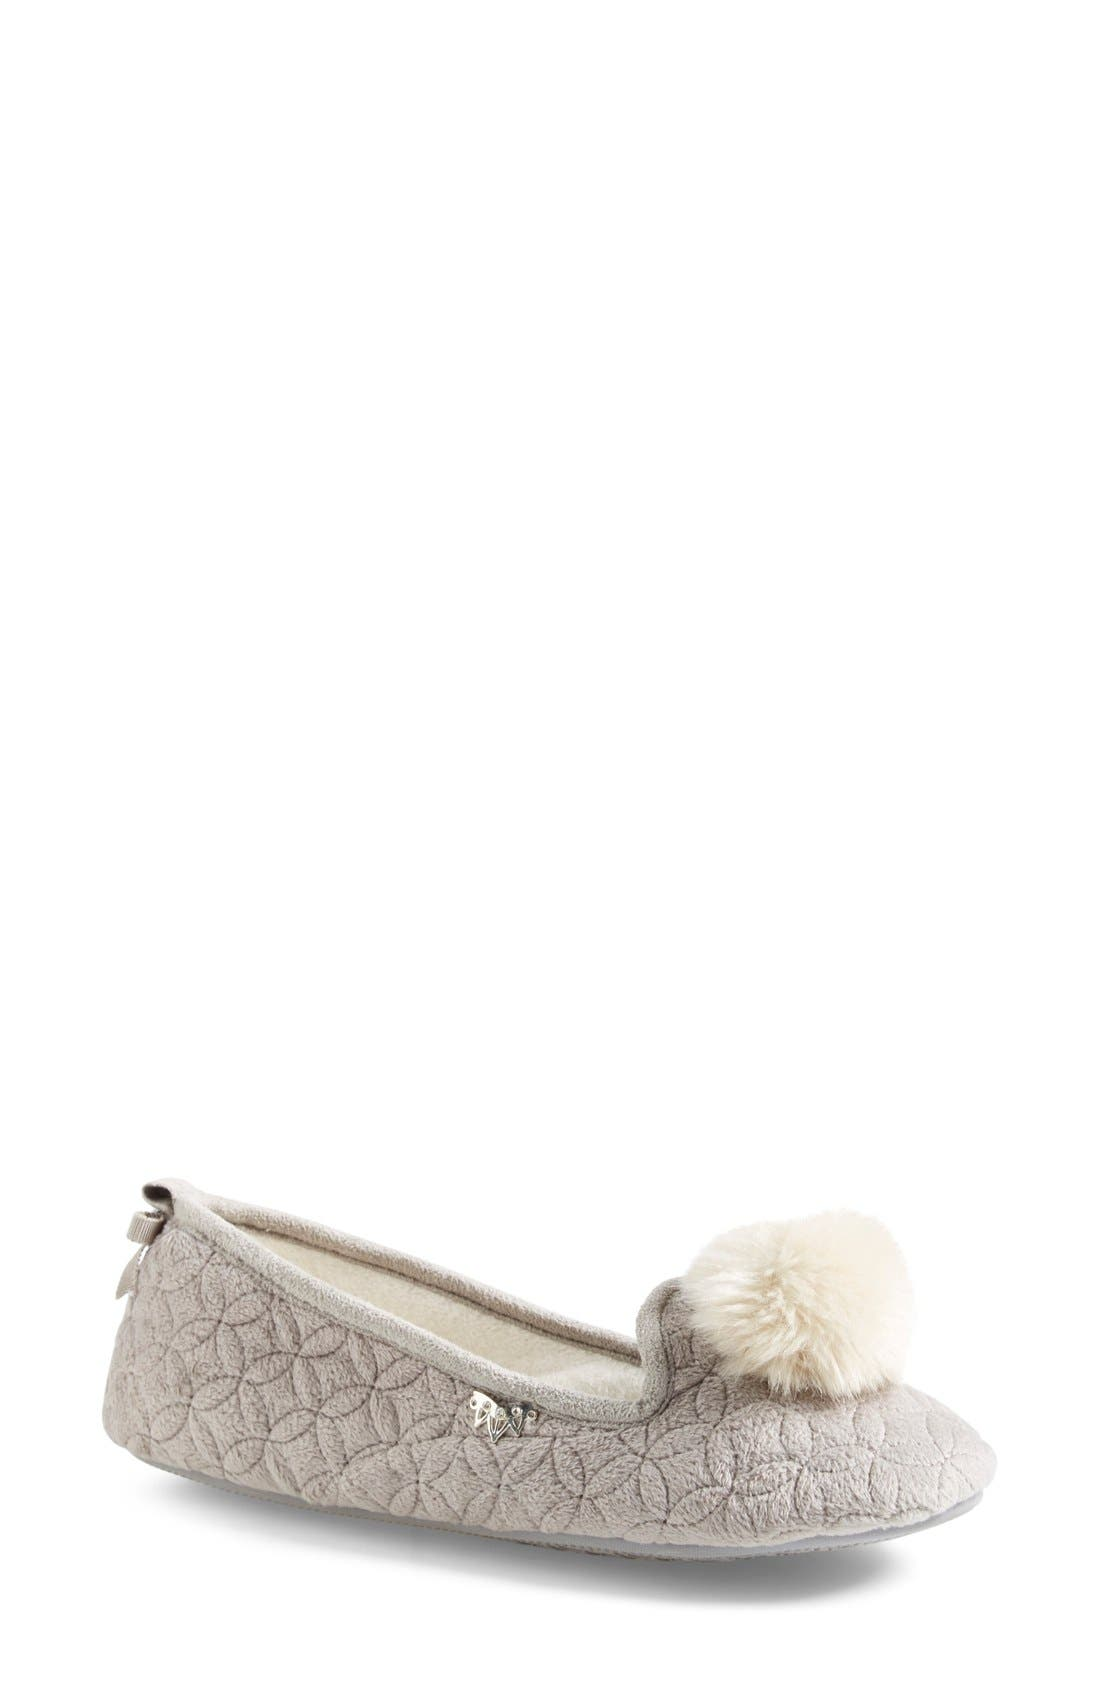 Alternate Image 1 Selected - Pretty You London 'Opera' Quilted Faux Fur Pompom Slipper